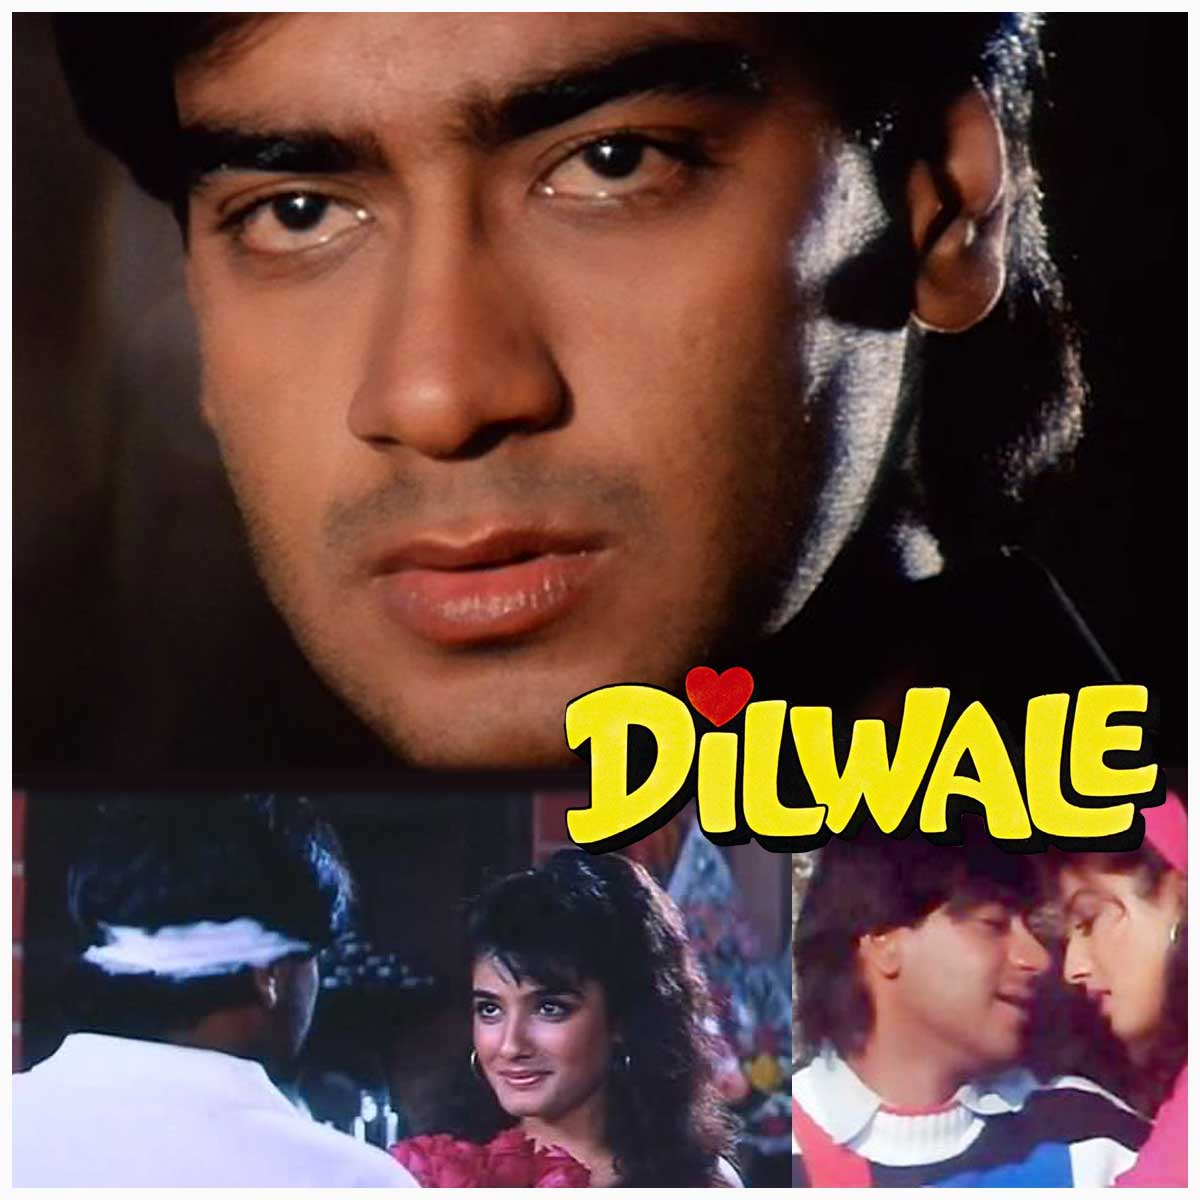 Dilwale Hindi Movies Song Free Download — TTCT